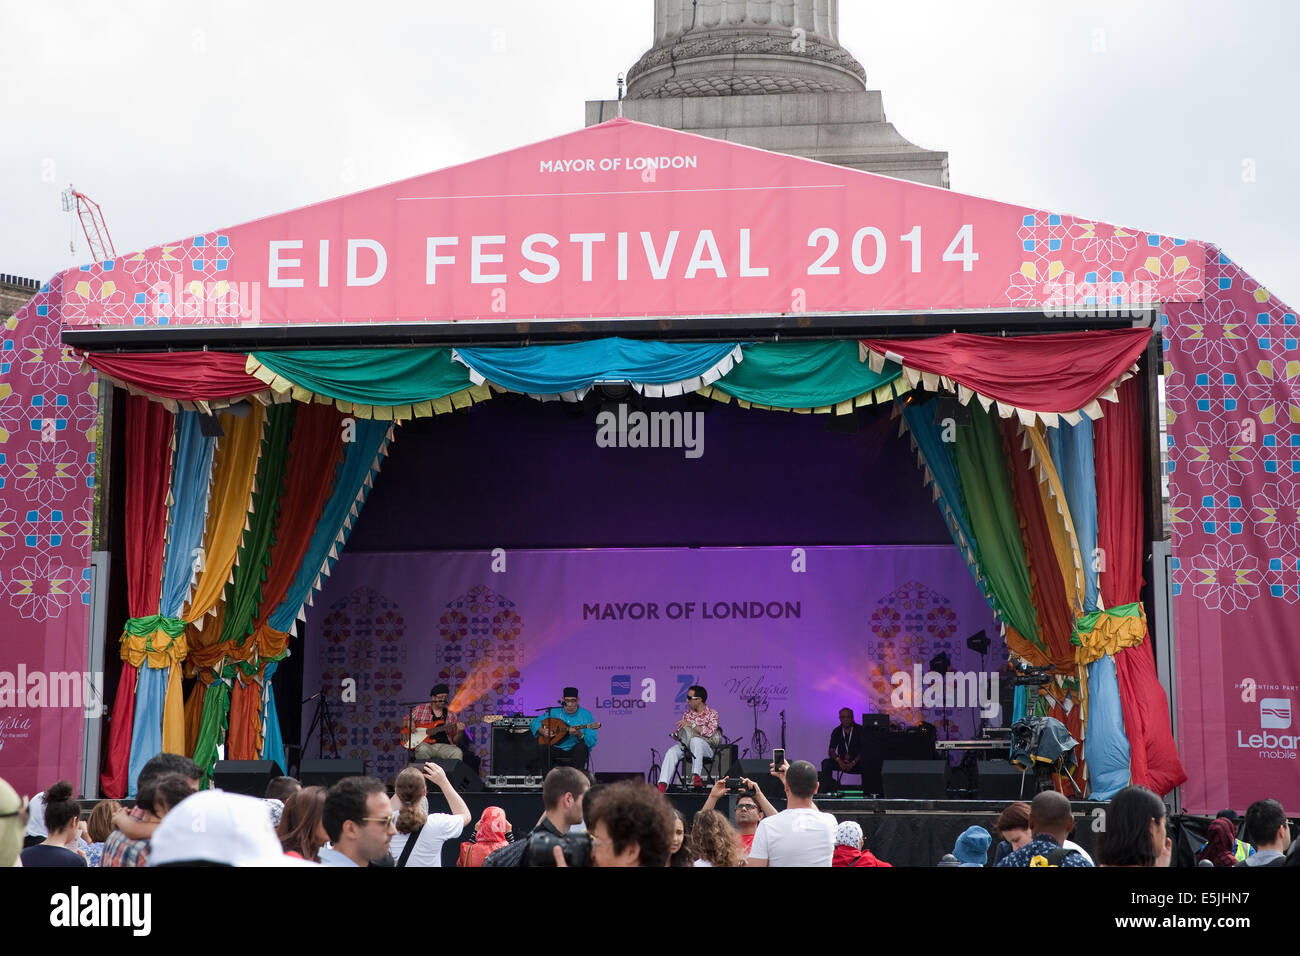 London, UK  2nd Aug, 2014  The stage at the free Eid Festival in